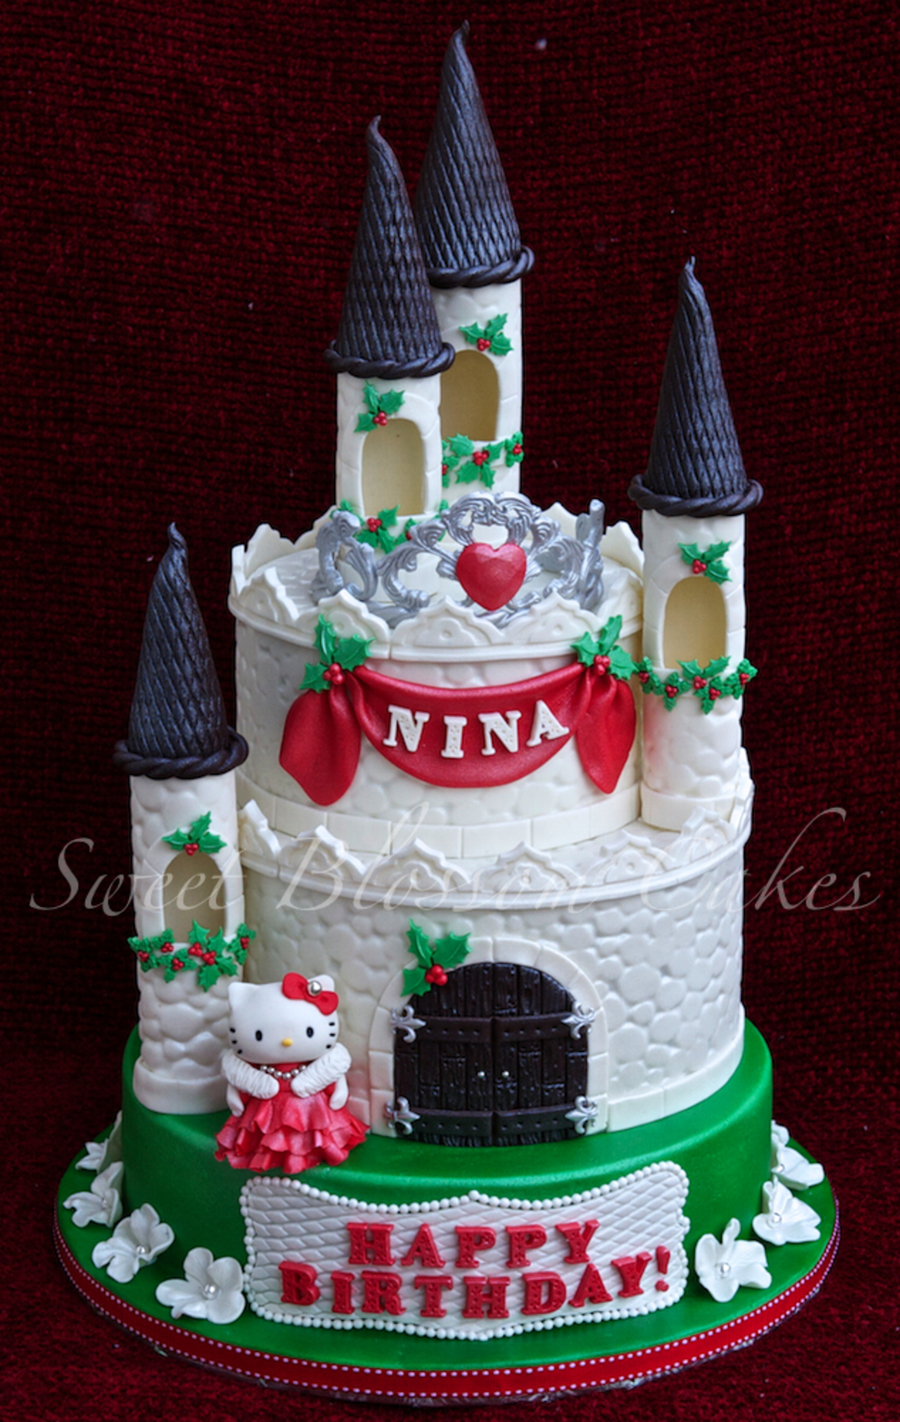 Winter Castle Cake Made It For My Friends Daughter She Had Birthday On Christmas But Got Sick Twice Since Then My Friend Ask Me To Do Ch on Cake Central